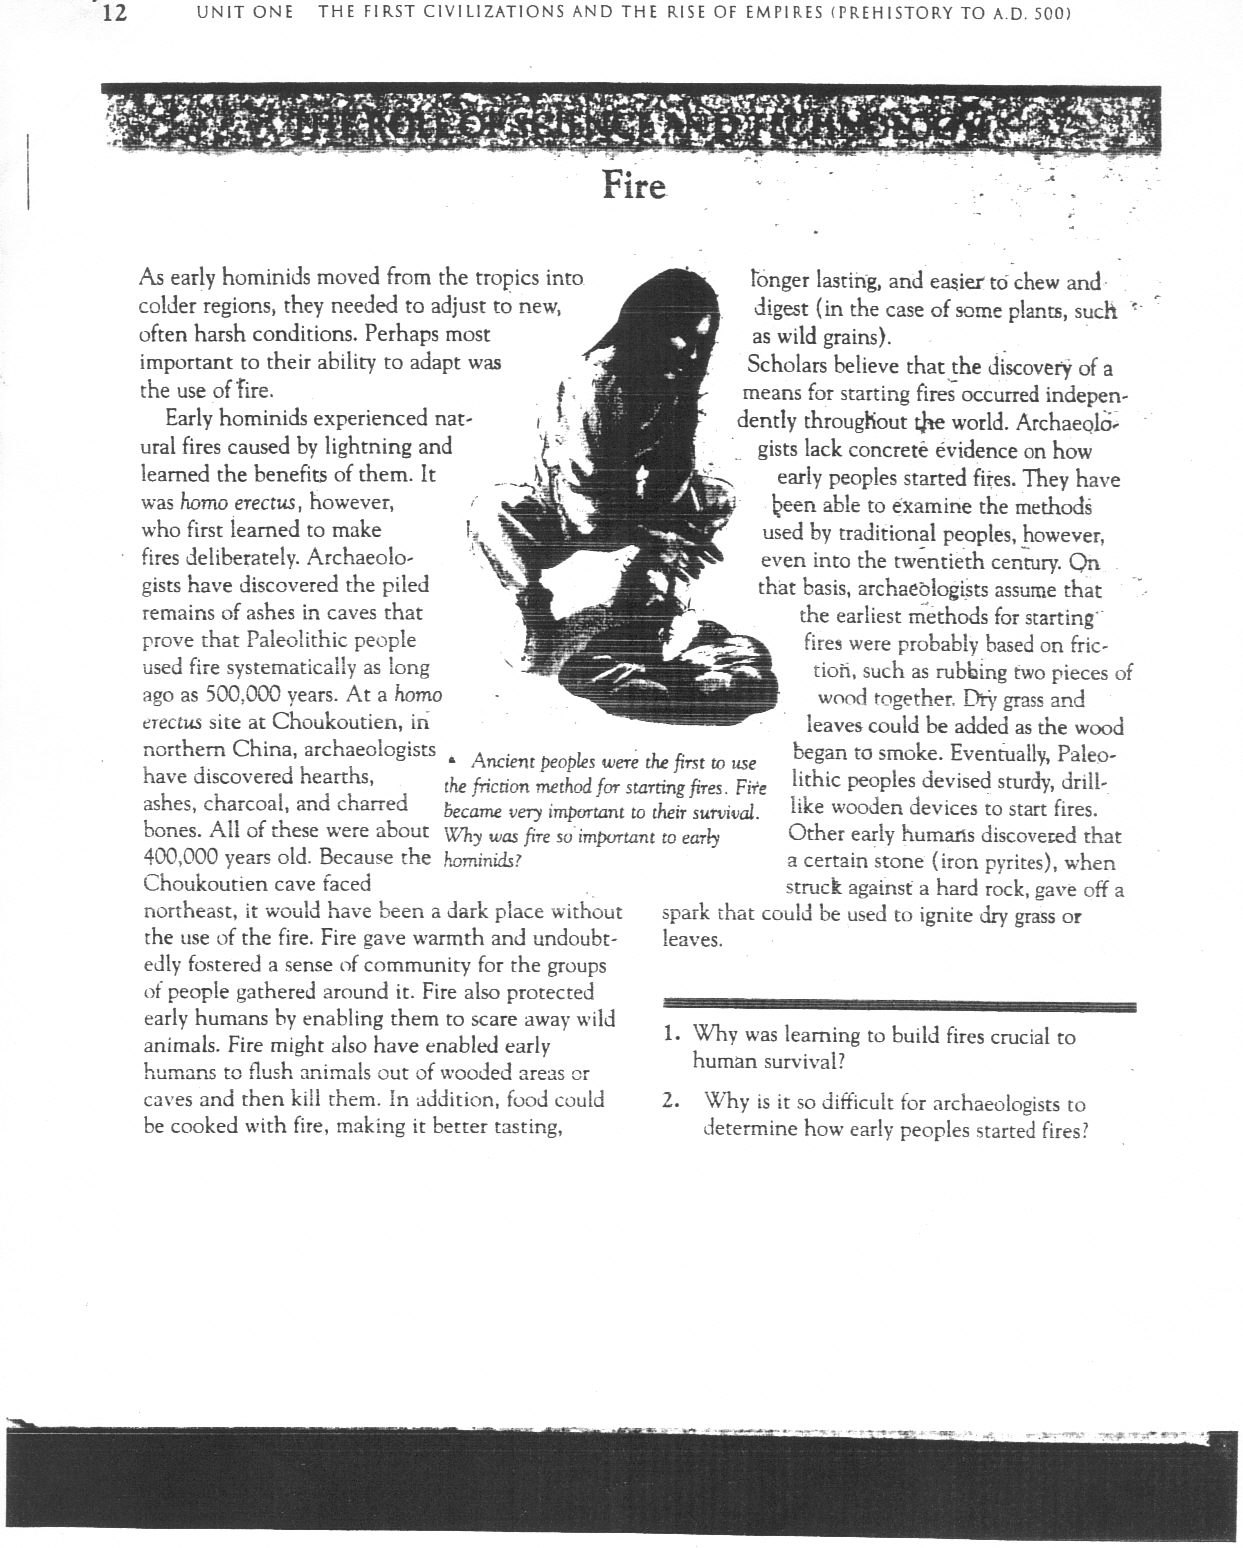 quest for fire essay Quest for fire essaysthis story happens 80,000 years ago when our ancestors first discovered the power of fire, but did not know how to master it one day, a peaceful.